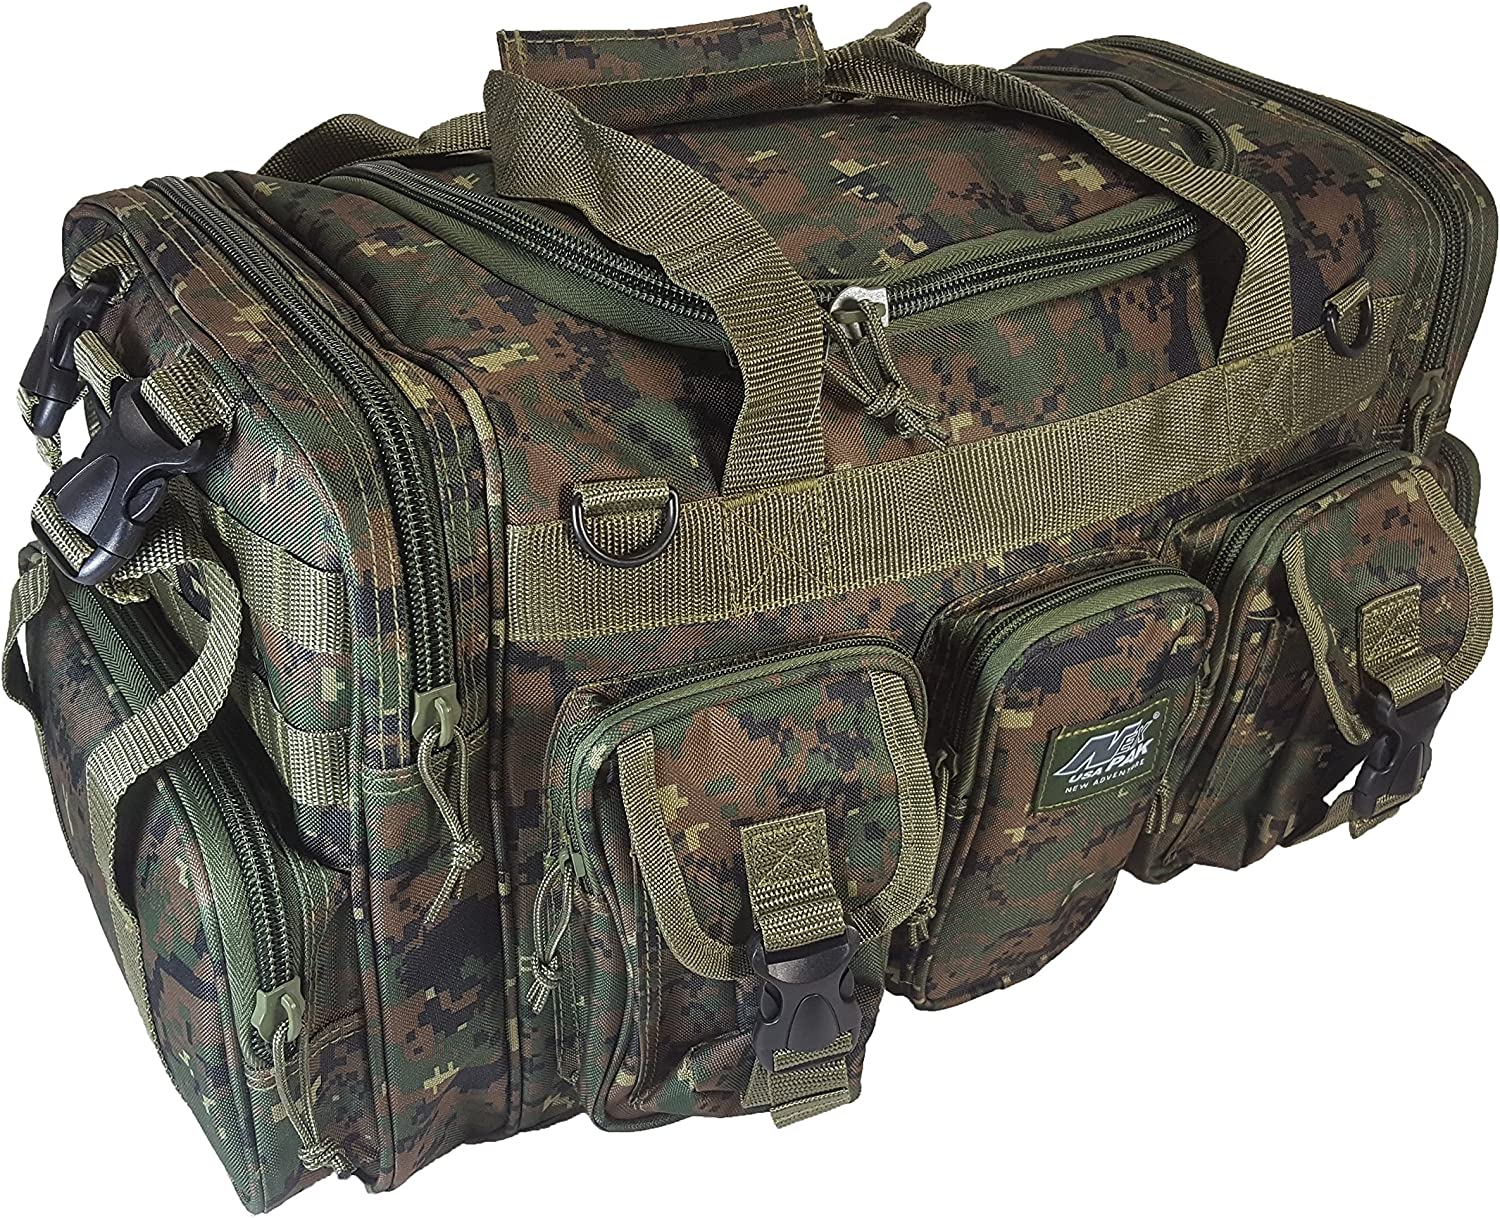 "Nexpak 22"" Tactical Duffle Millitary Molle Gear Range Bag with Shoulder Strap"